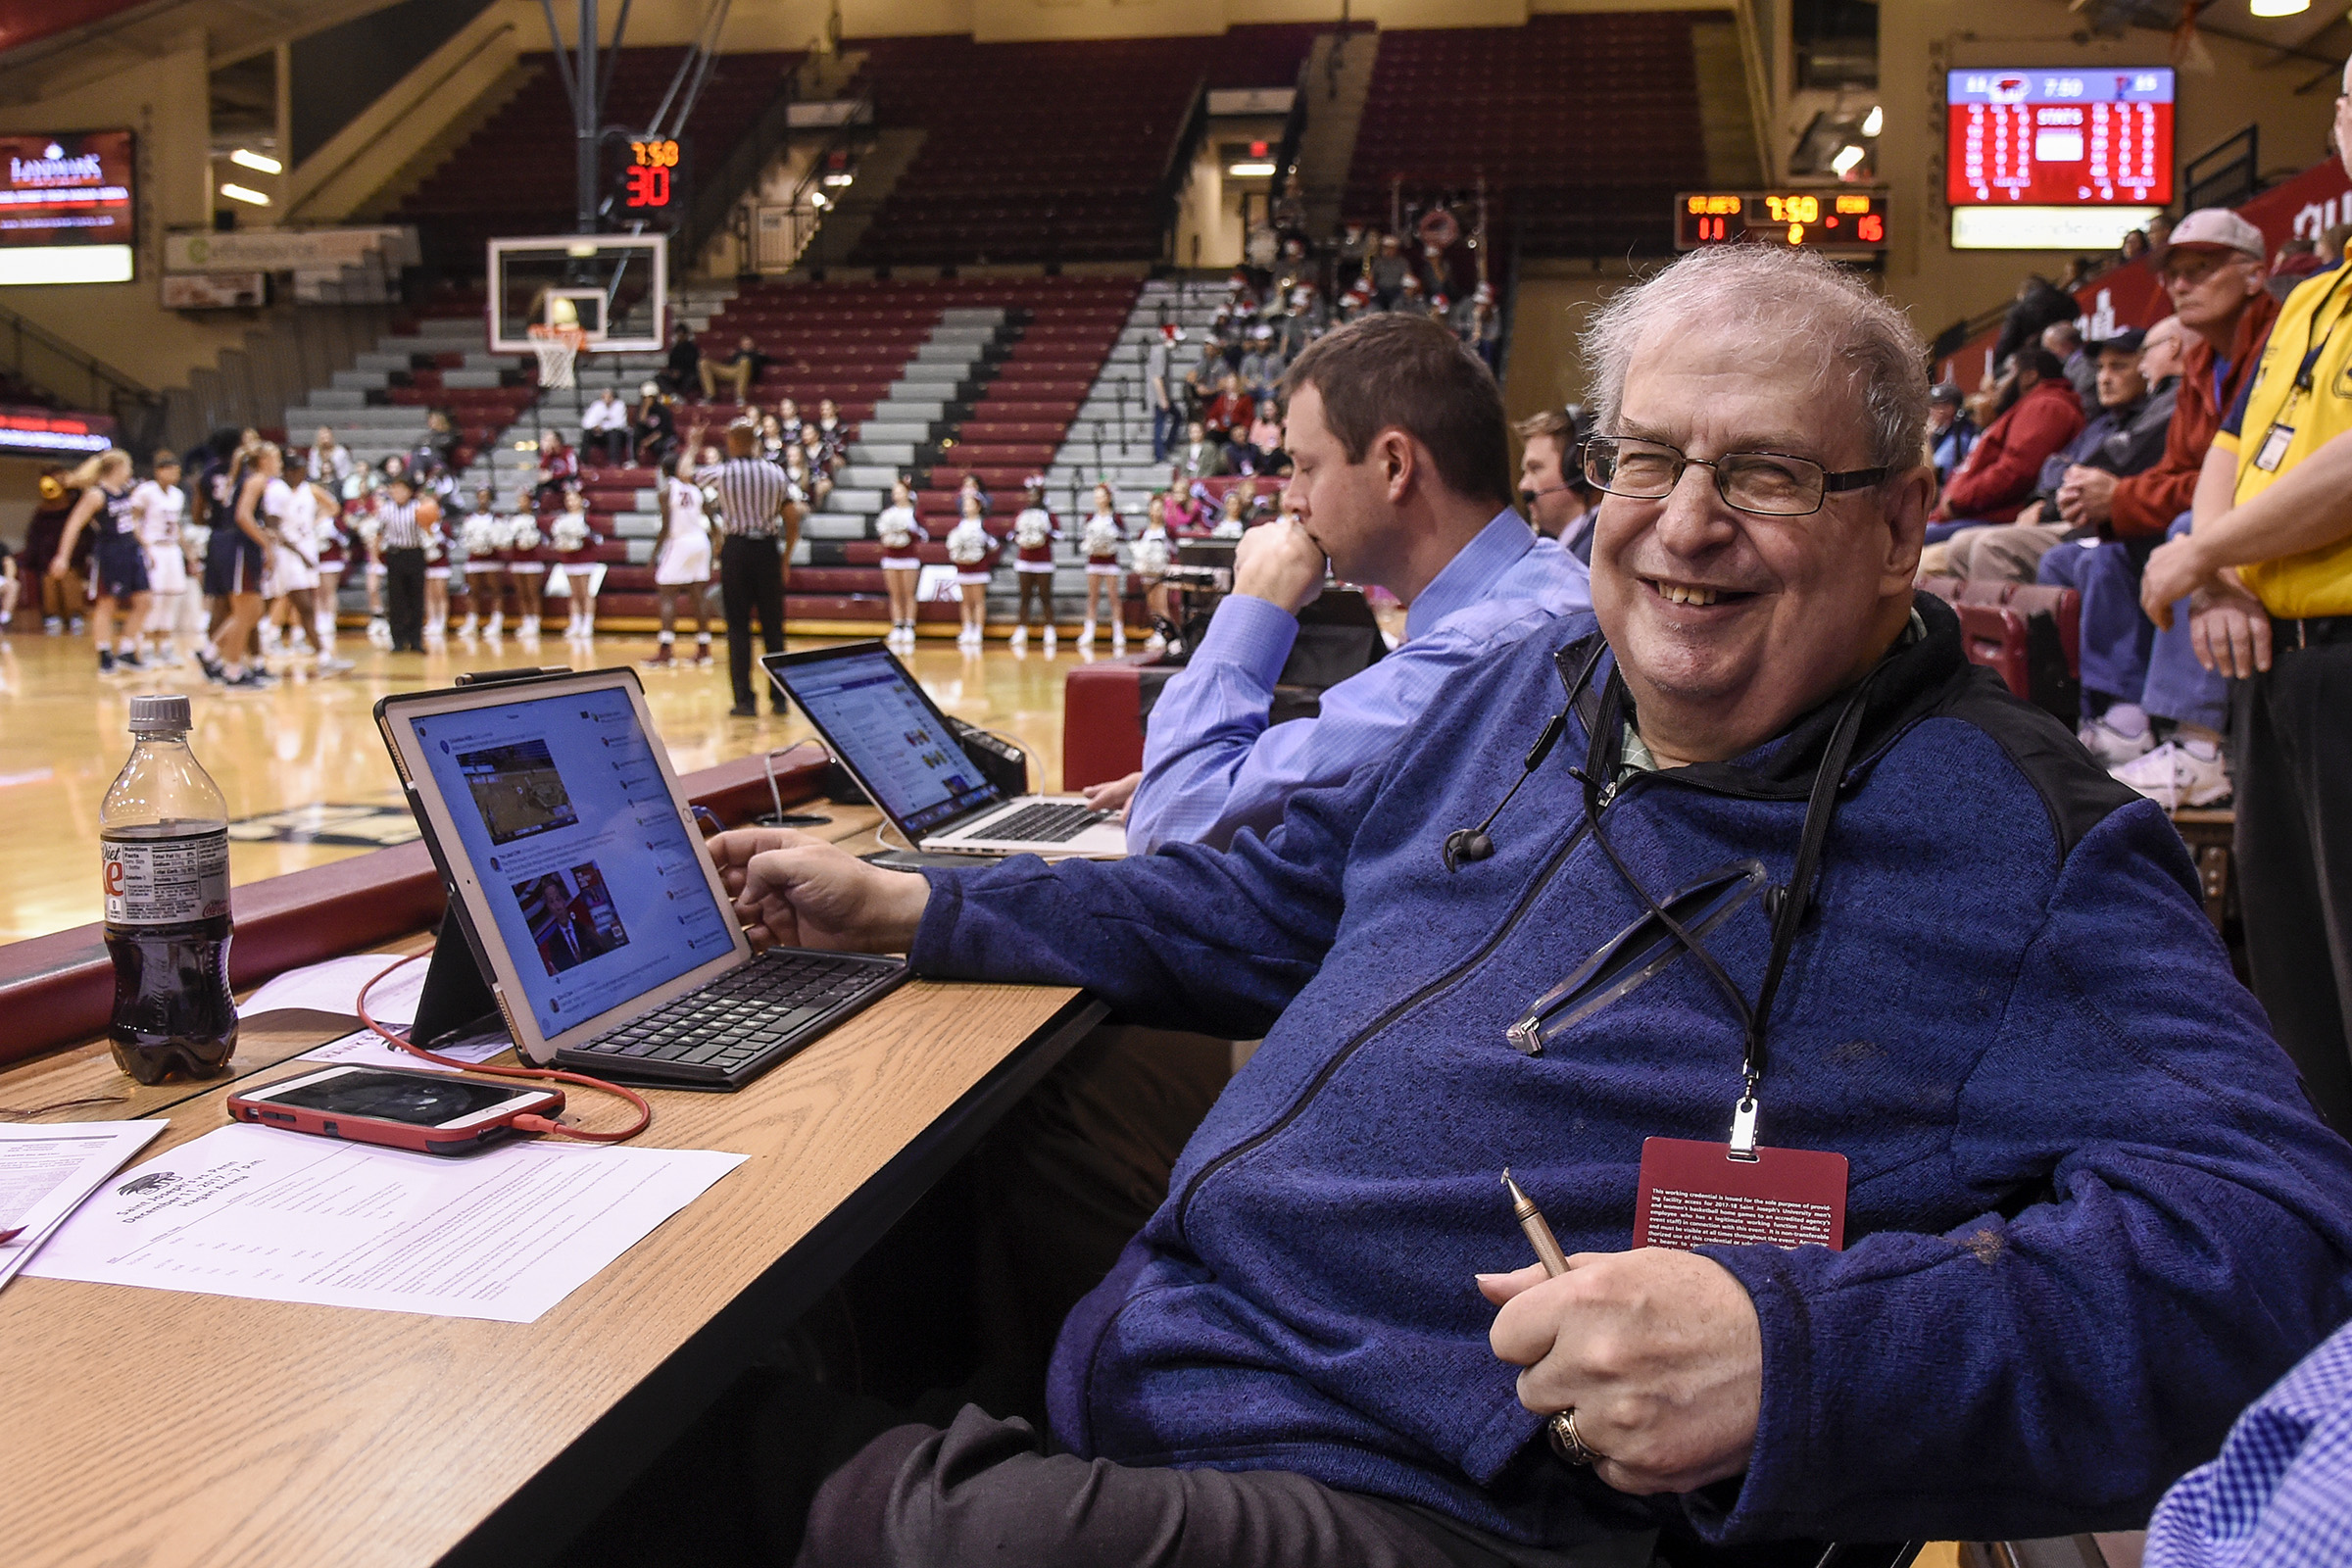 Mel Greenberg covers more games now than when he was a newspaper writer covering the sport.